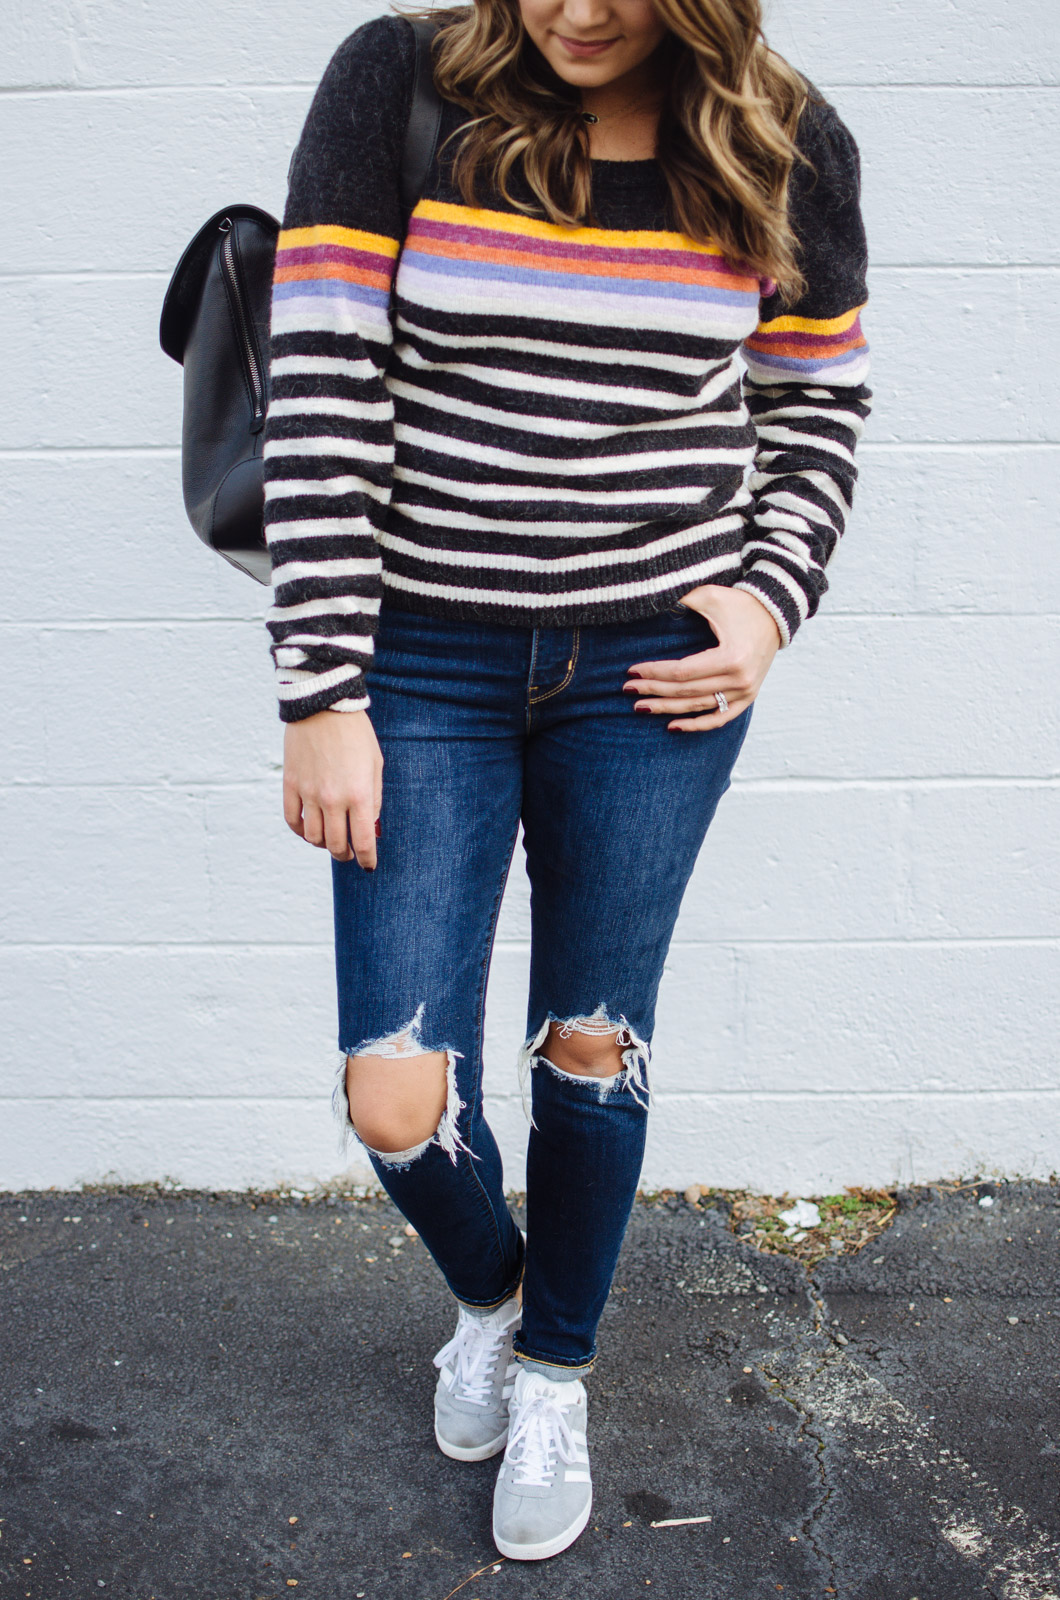 stripe sweater outfit - retro striped sweater | For more cute Fall and Winter outfits, click through to bylaurenm.com!